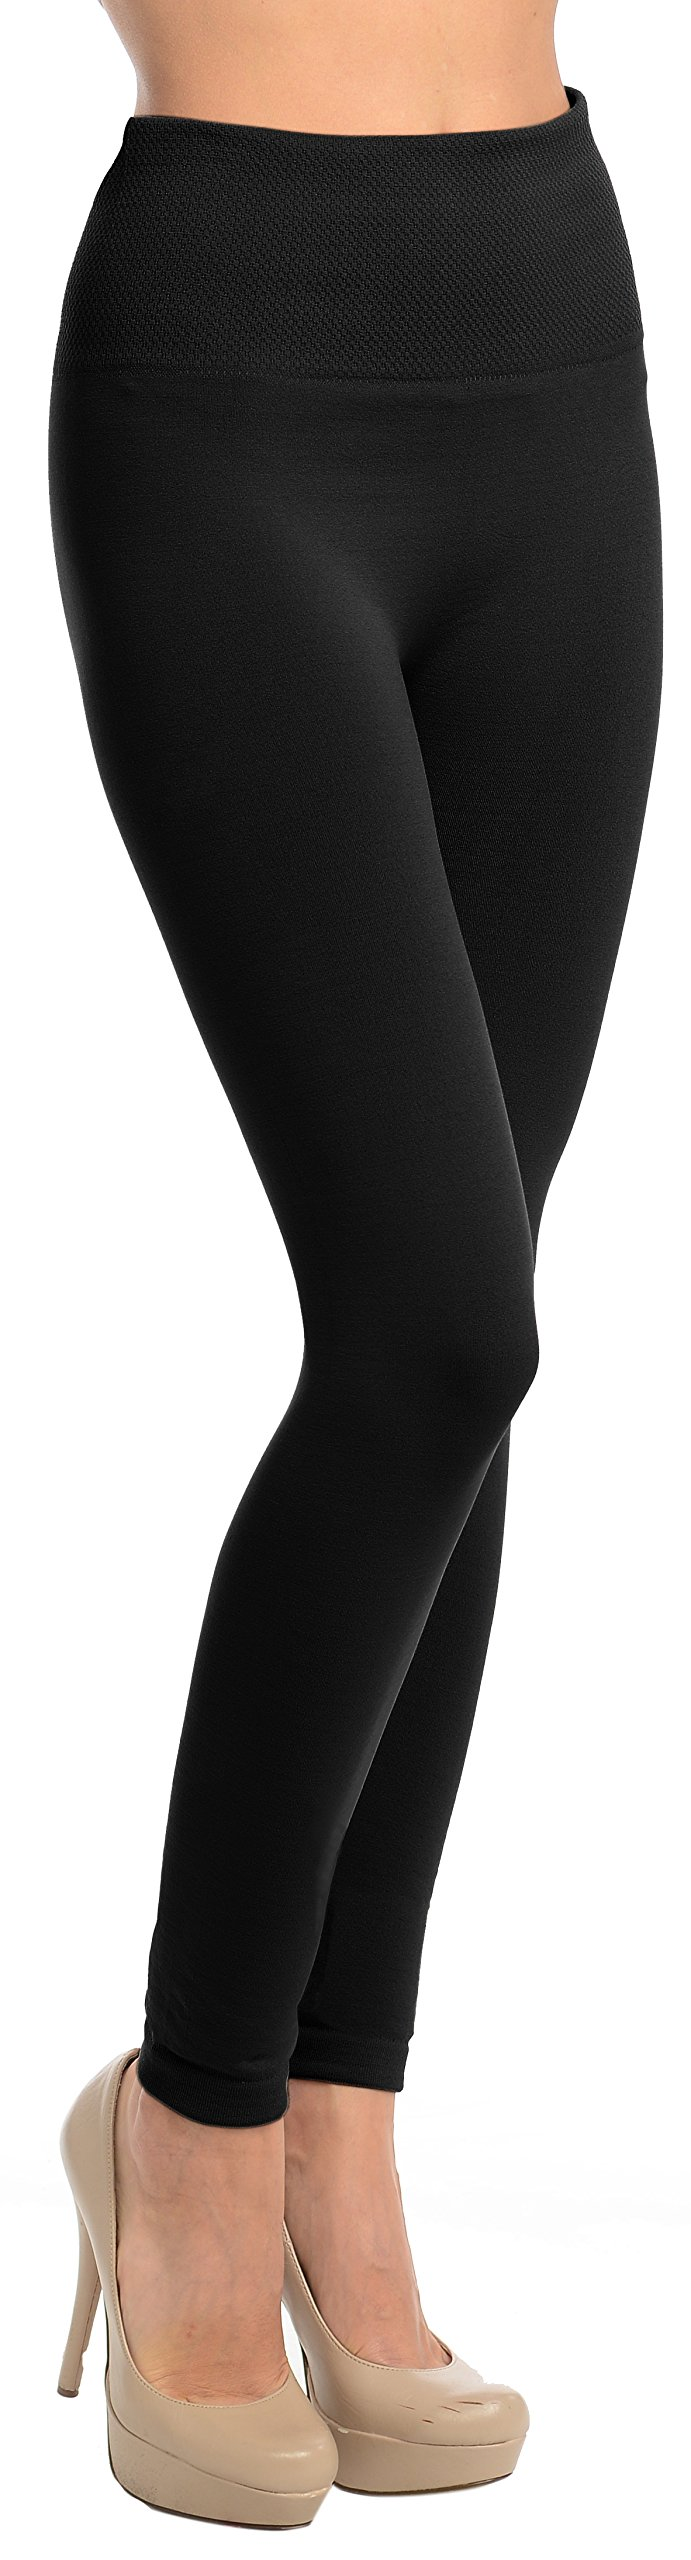 High Waisted Fleece Solid Leggings, Black, One Size: Fits Size XS (0) - L (10)